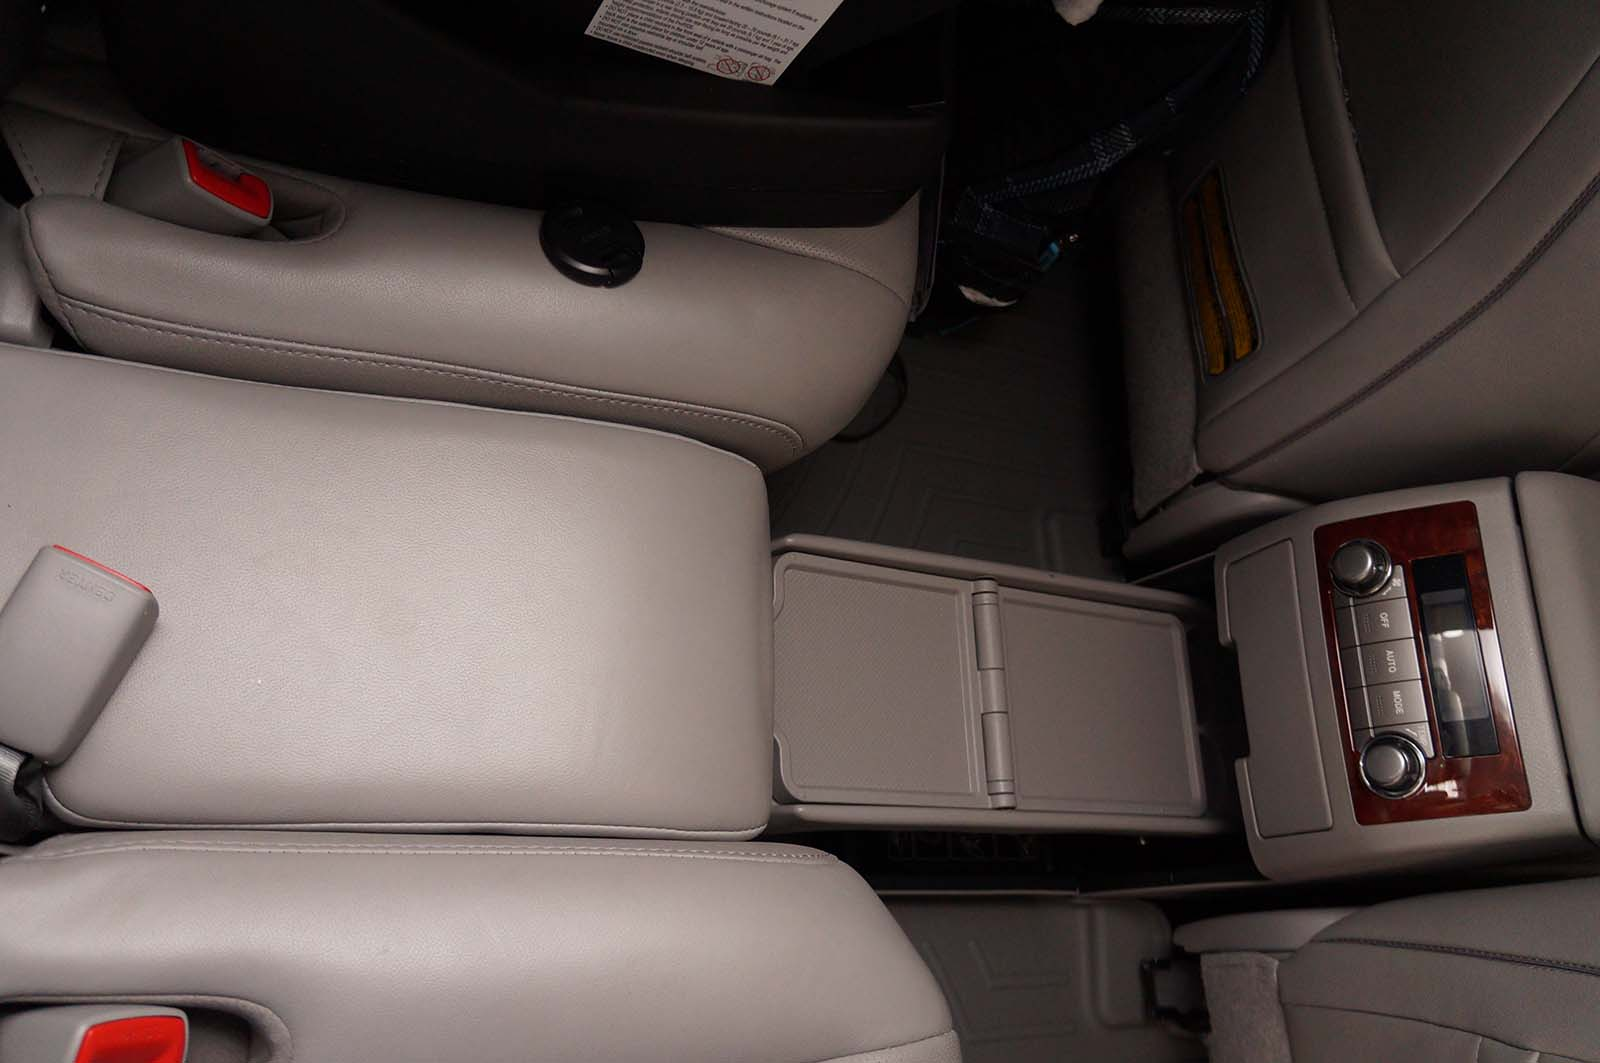 2012 Toyota Highlander middle seat 2 by Sarah Franzen